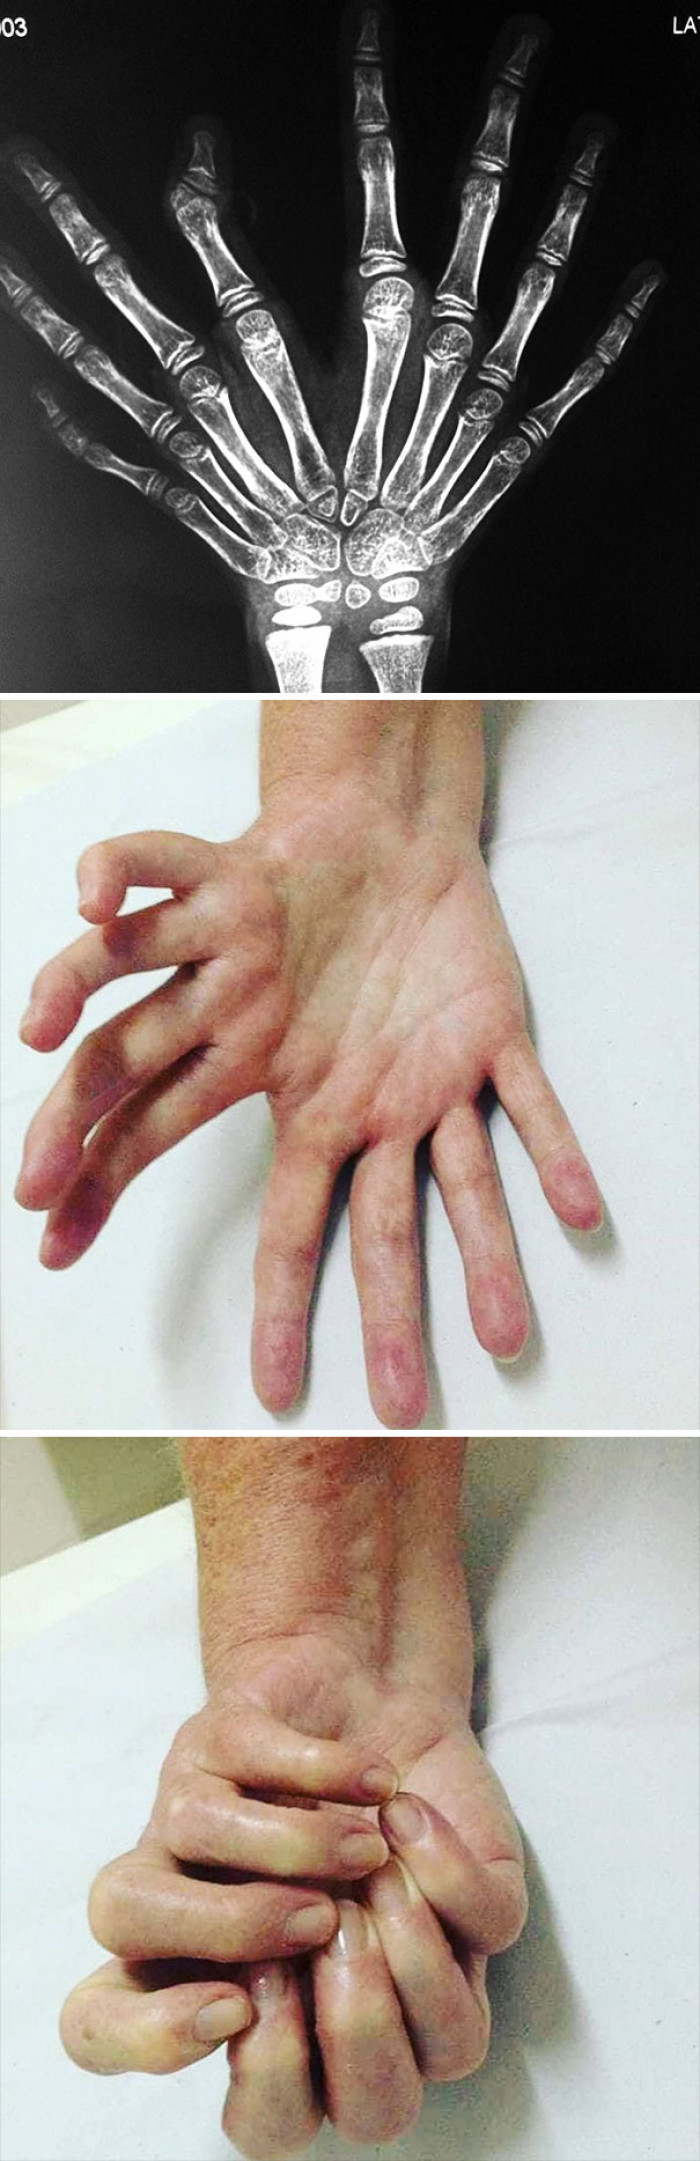 Mirror Hand Syndrome